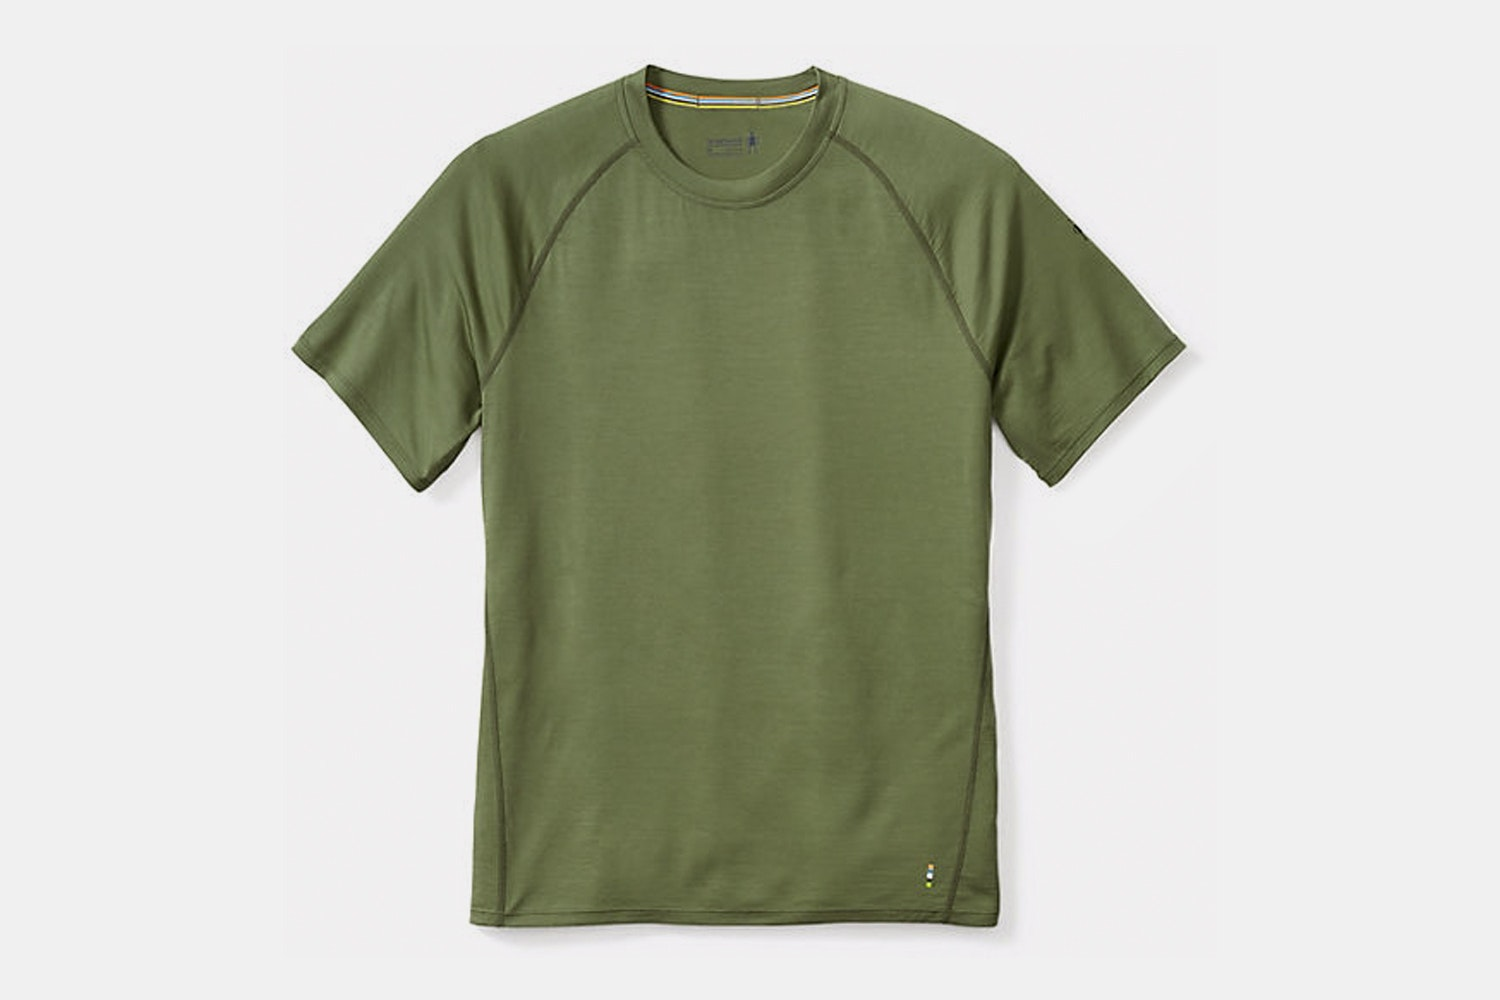 Men's – Light Loden